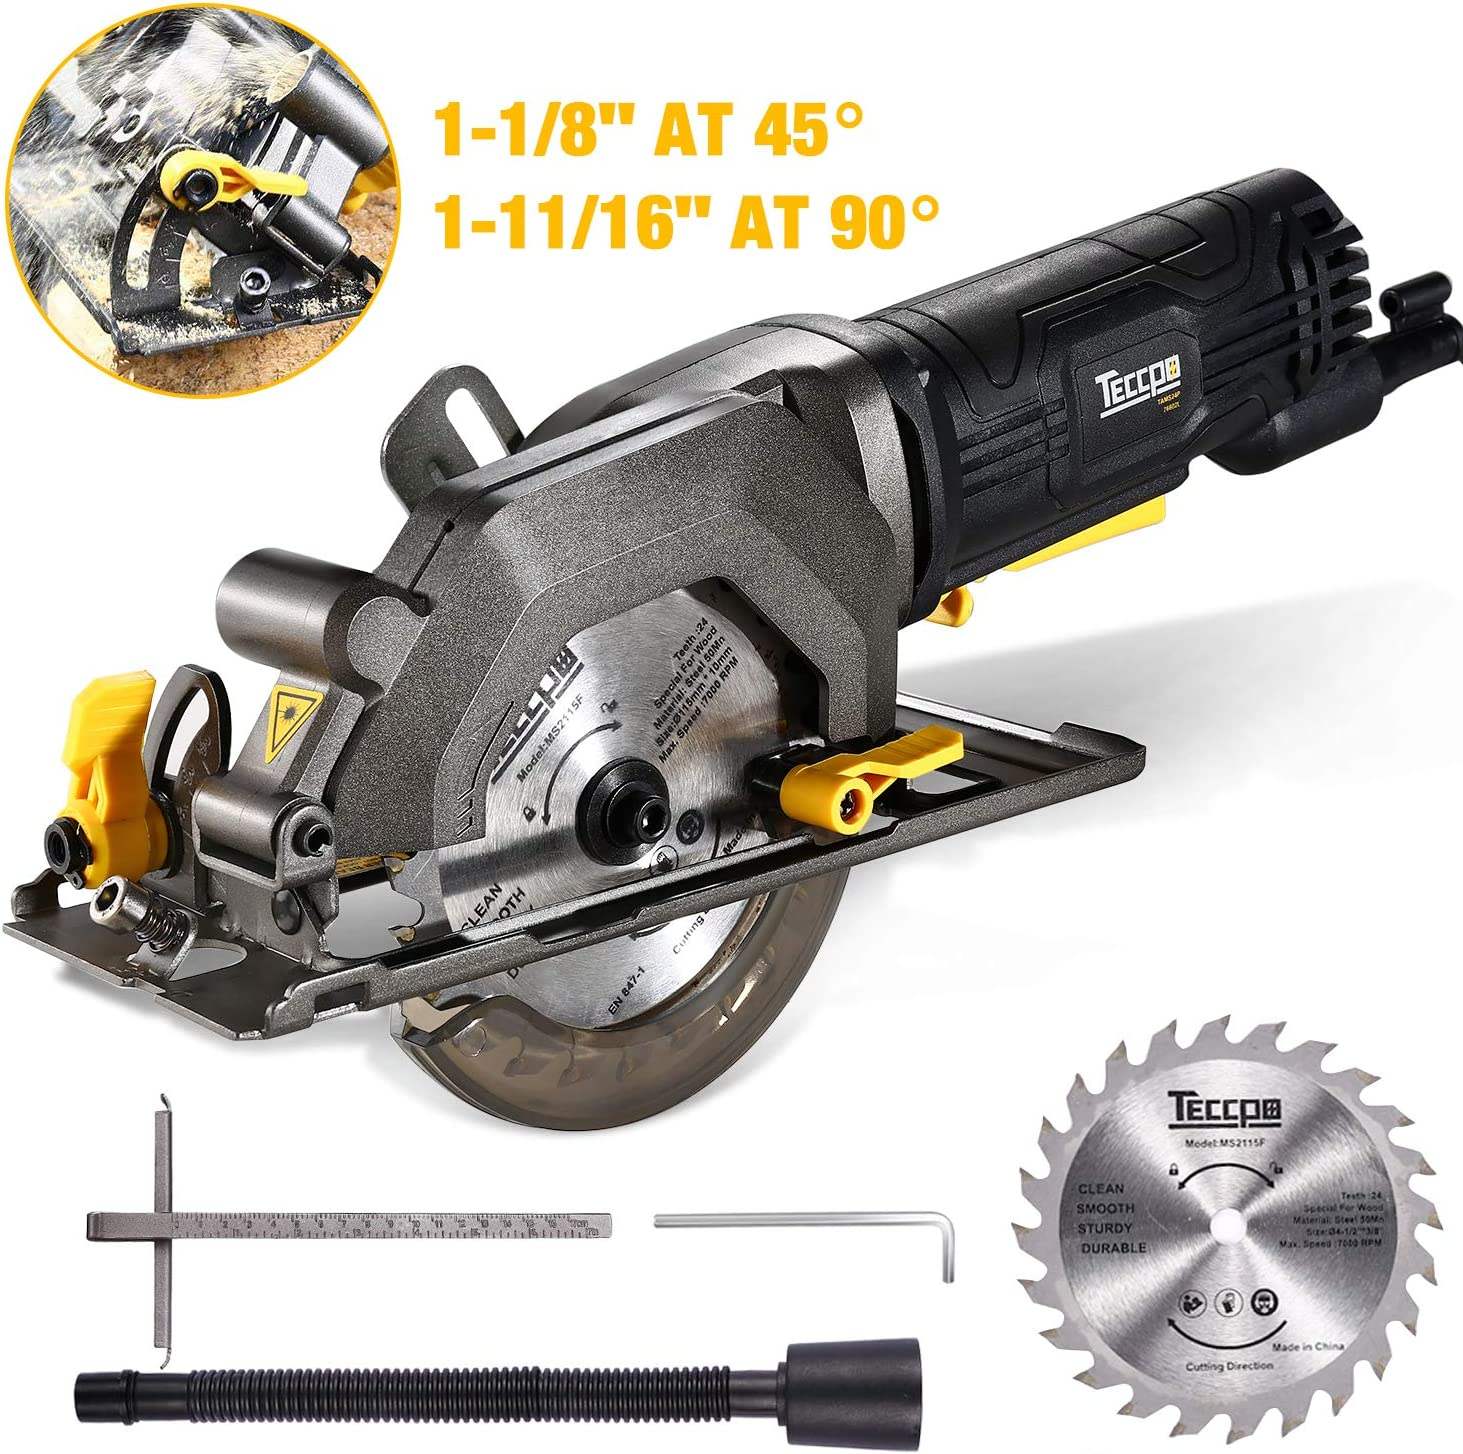 TECCPO Circular Saw, 4 Amp 4-1 2 3500 RPM Compact Circular Saw with 24T Carbide Tipped Blade for Wood Cutting, 7 Scale Ruler, Max Cutting Depth 1-11 16 90 , 1-1 8 45 -TAMS25P